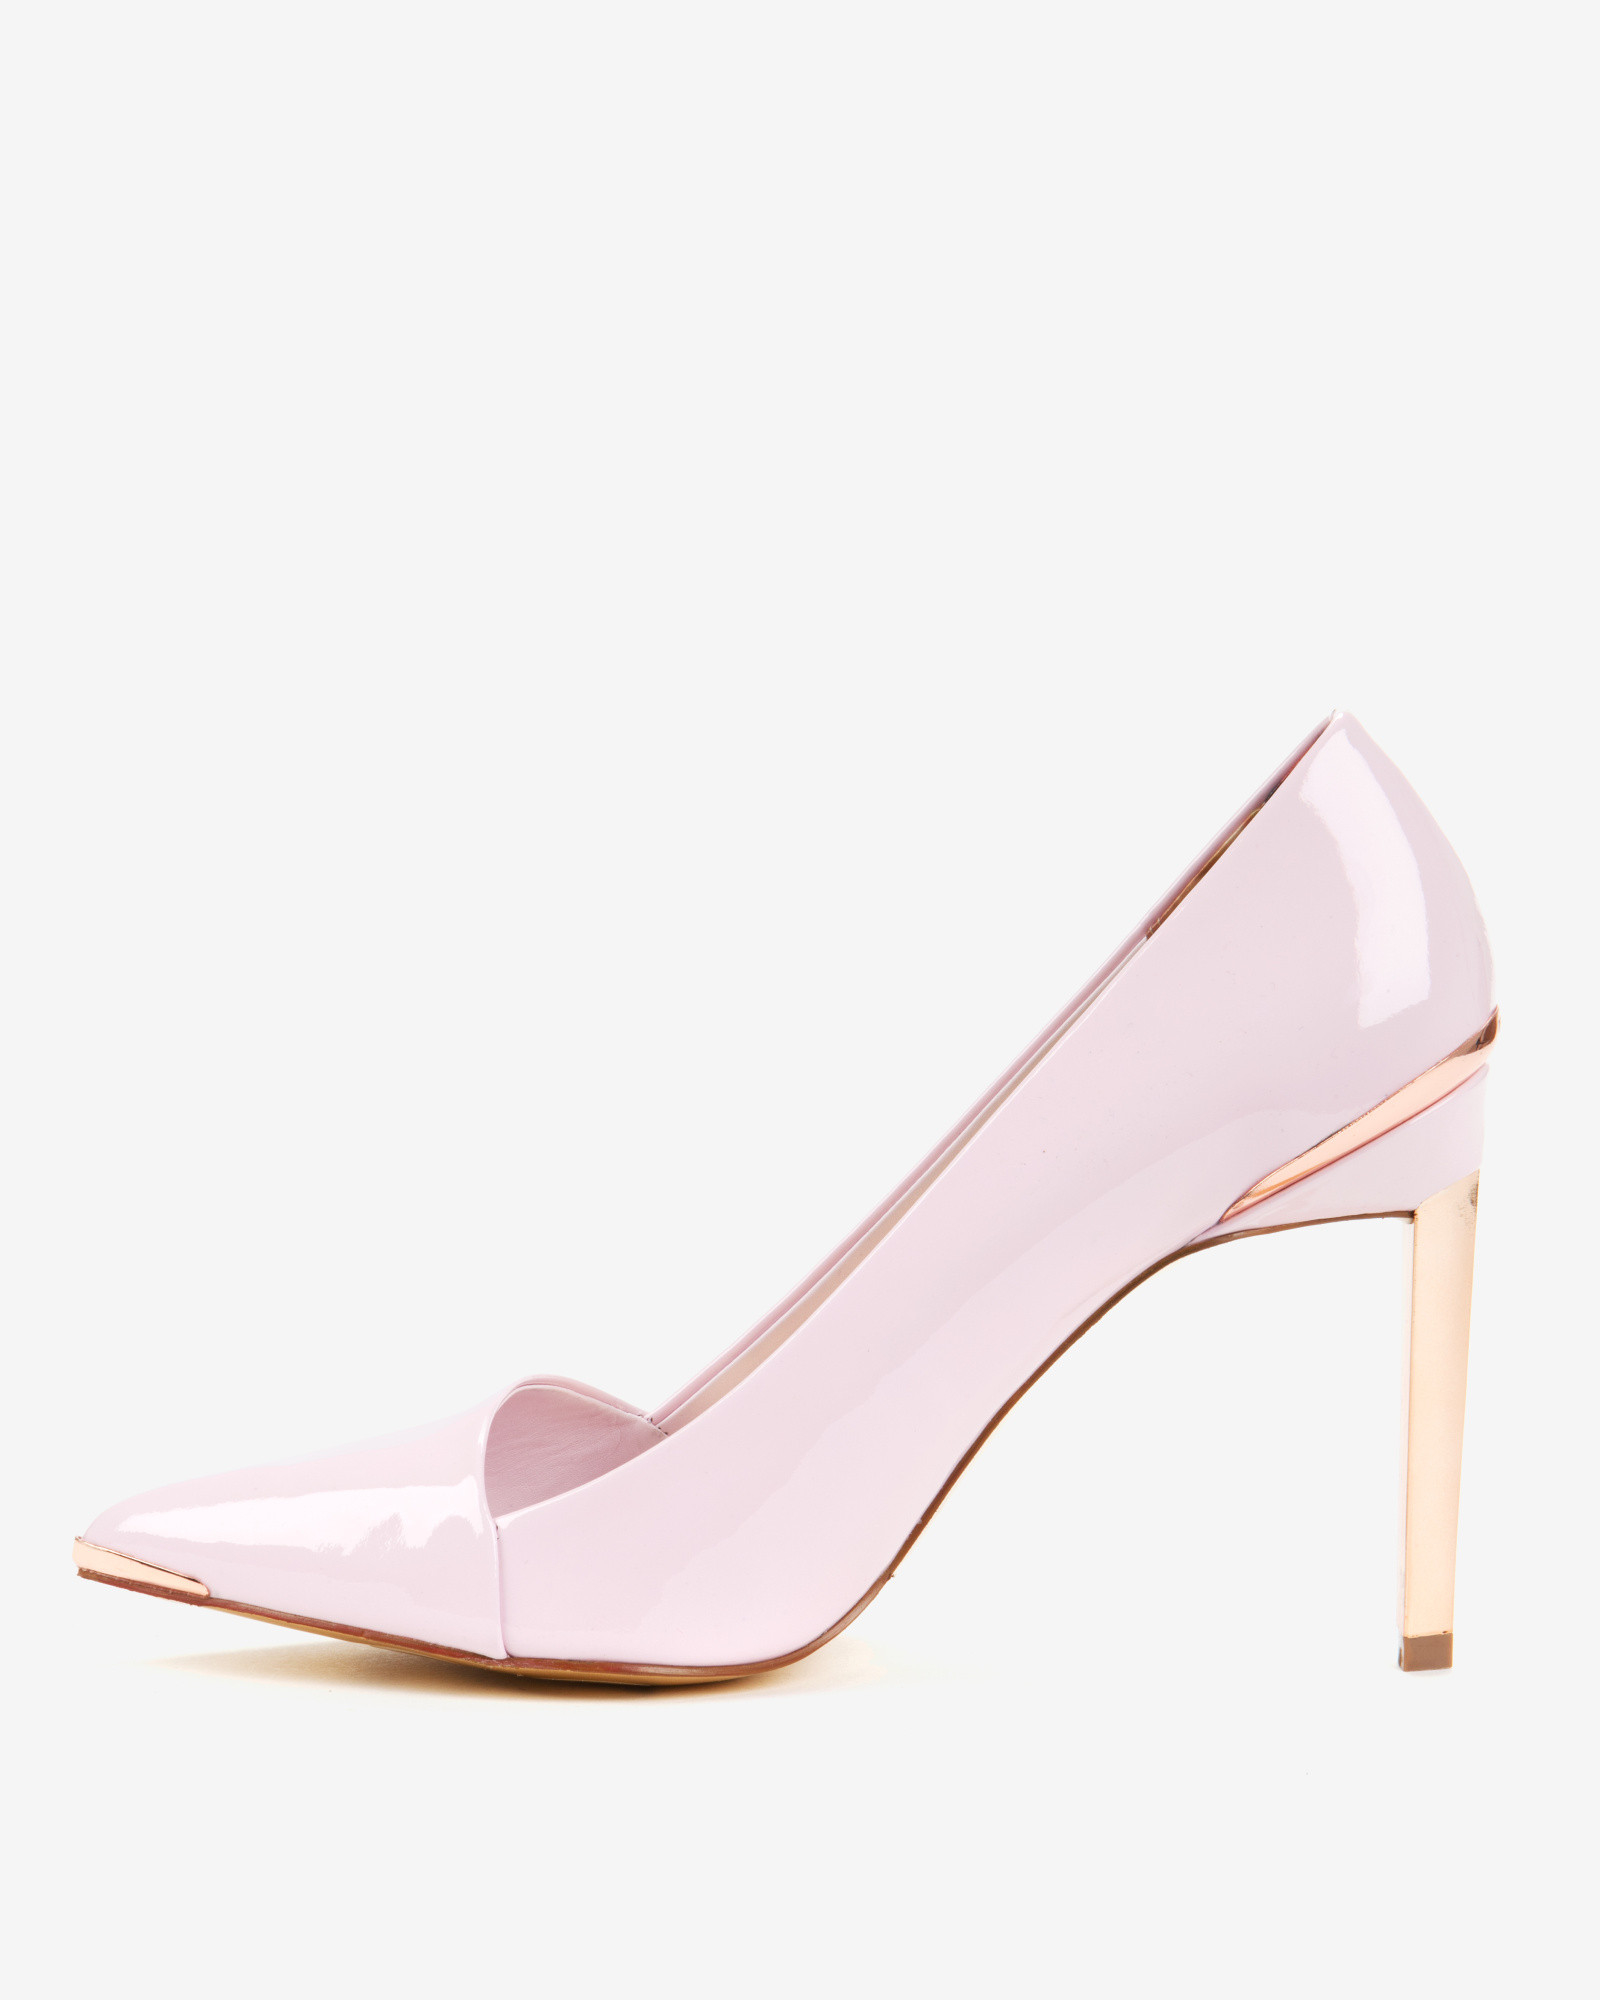 Lyst - Ted Baker Pointed High Top Court Shoes in Pink 414f56bf7